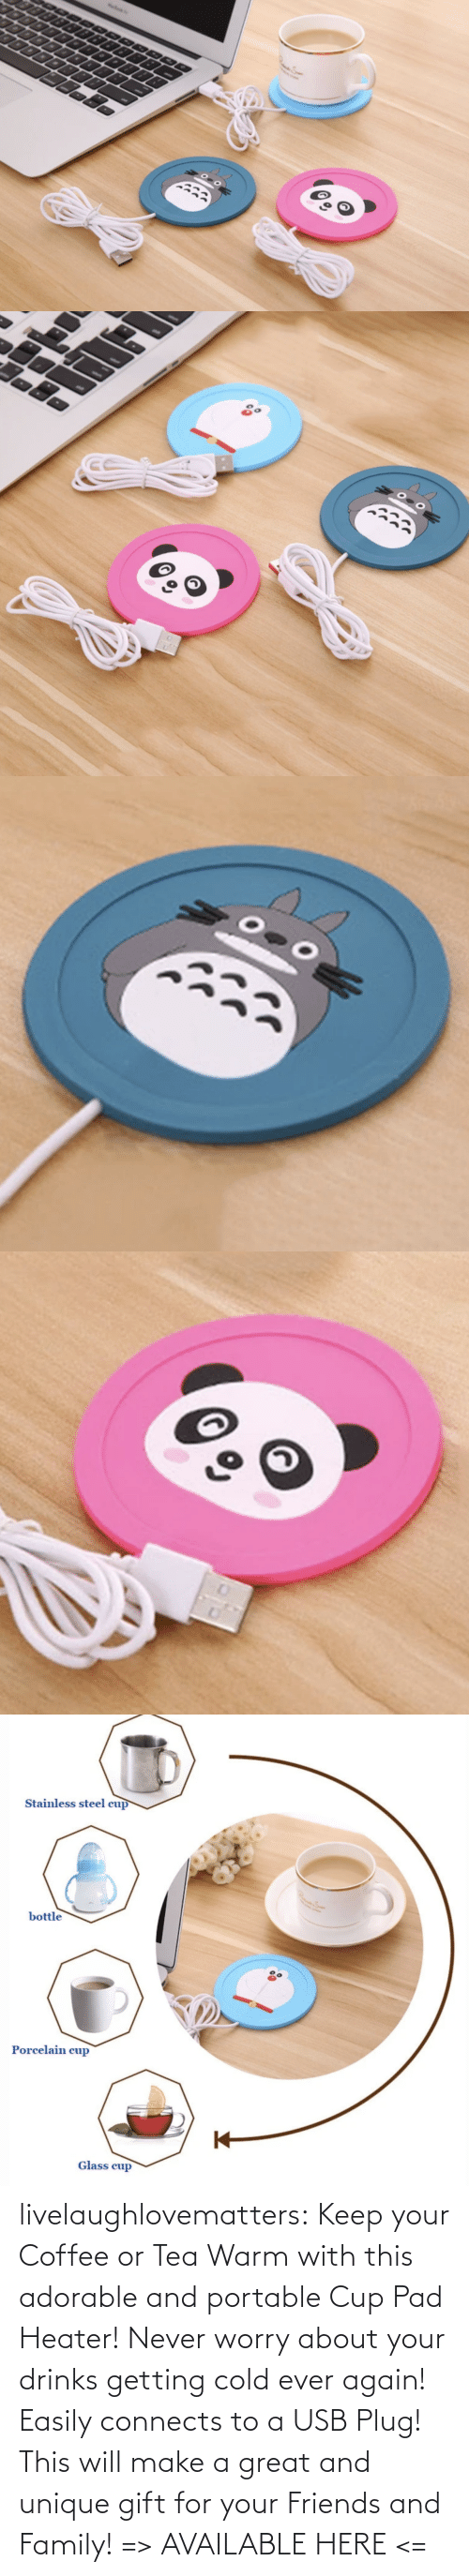 tea: livelaughlovematters: Keep your Coffee or Tea Warm with this adorable and portable Cup Pad Heater! Never worry about your drinks getting cold ever again! Easily connects to a USB Plug! This will make a great and unique gift for your Friends and Family! => AVAILABLE HERE <=